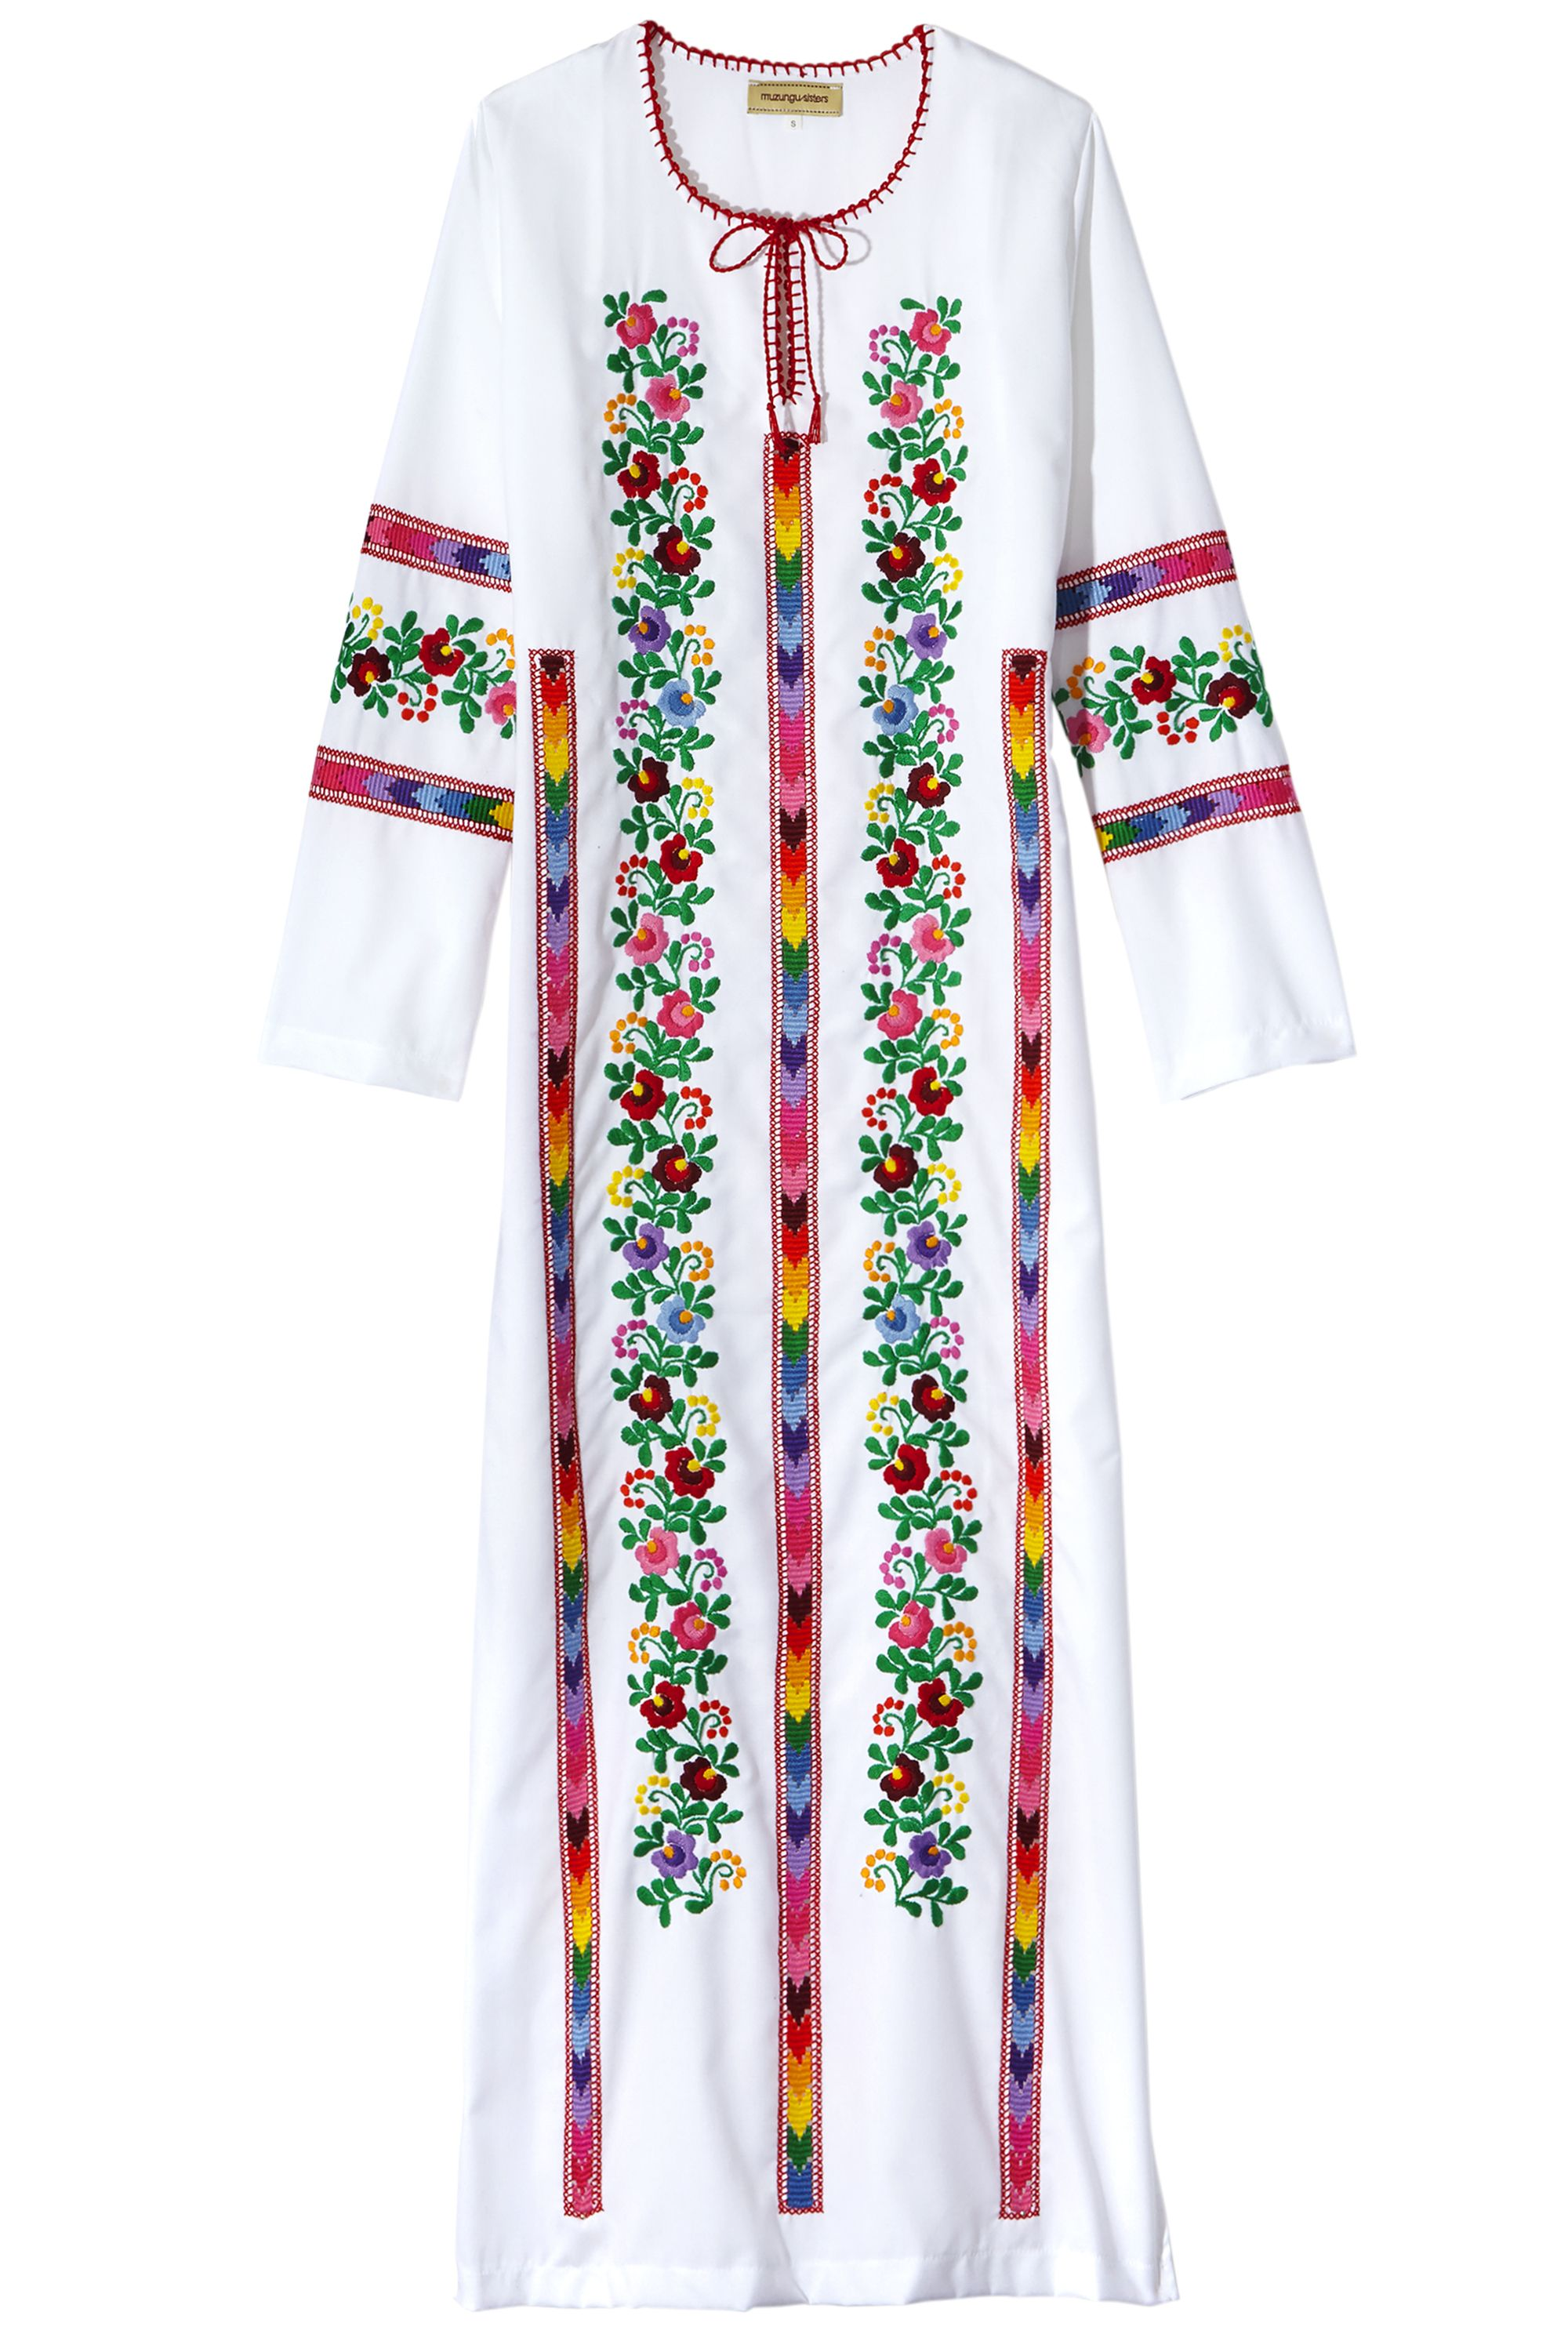 "<p>A colorful caftan transitions seamlessly from the pool to the party.</p><p><strong>STYLIST'S TIP: </strong>Floral patterns add a feminine feel.</p><p><strong>Muzungu Sisters </strong>dress, $666, <a href=""http://www.muzungusisters.com/"">muzungusisters.com</a>. <br></p>"